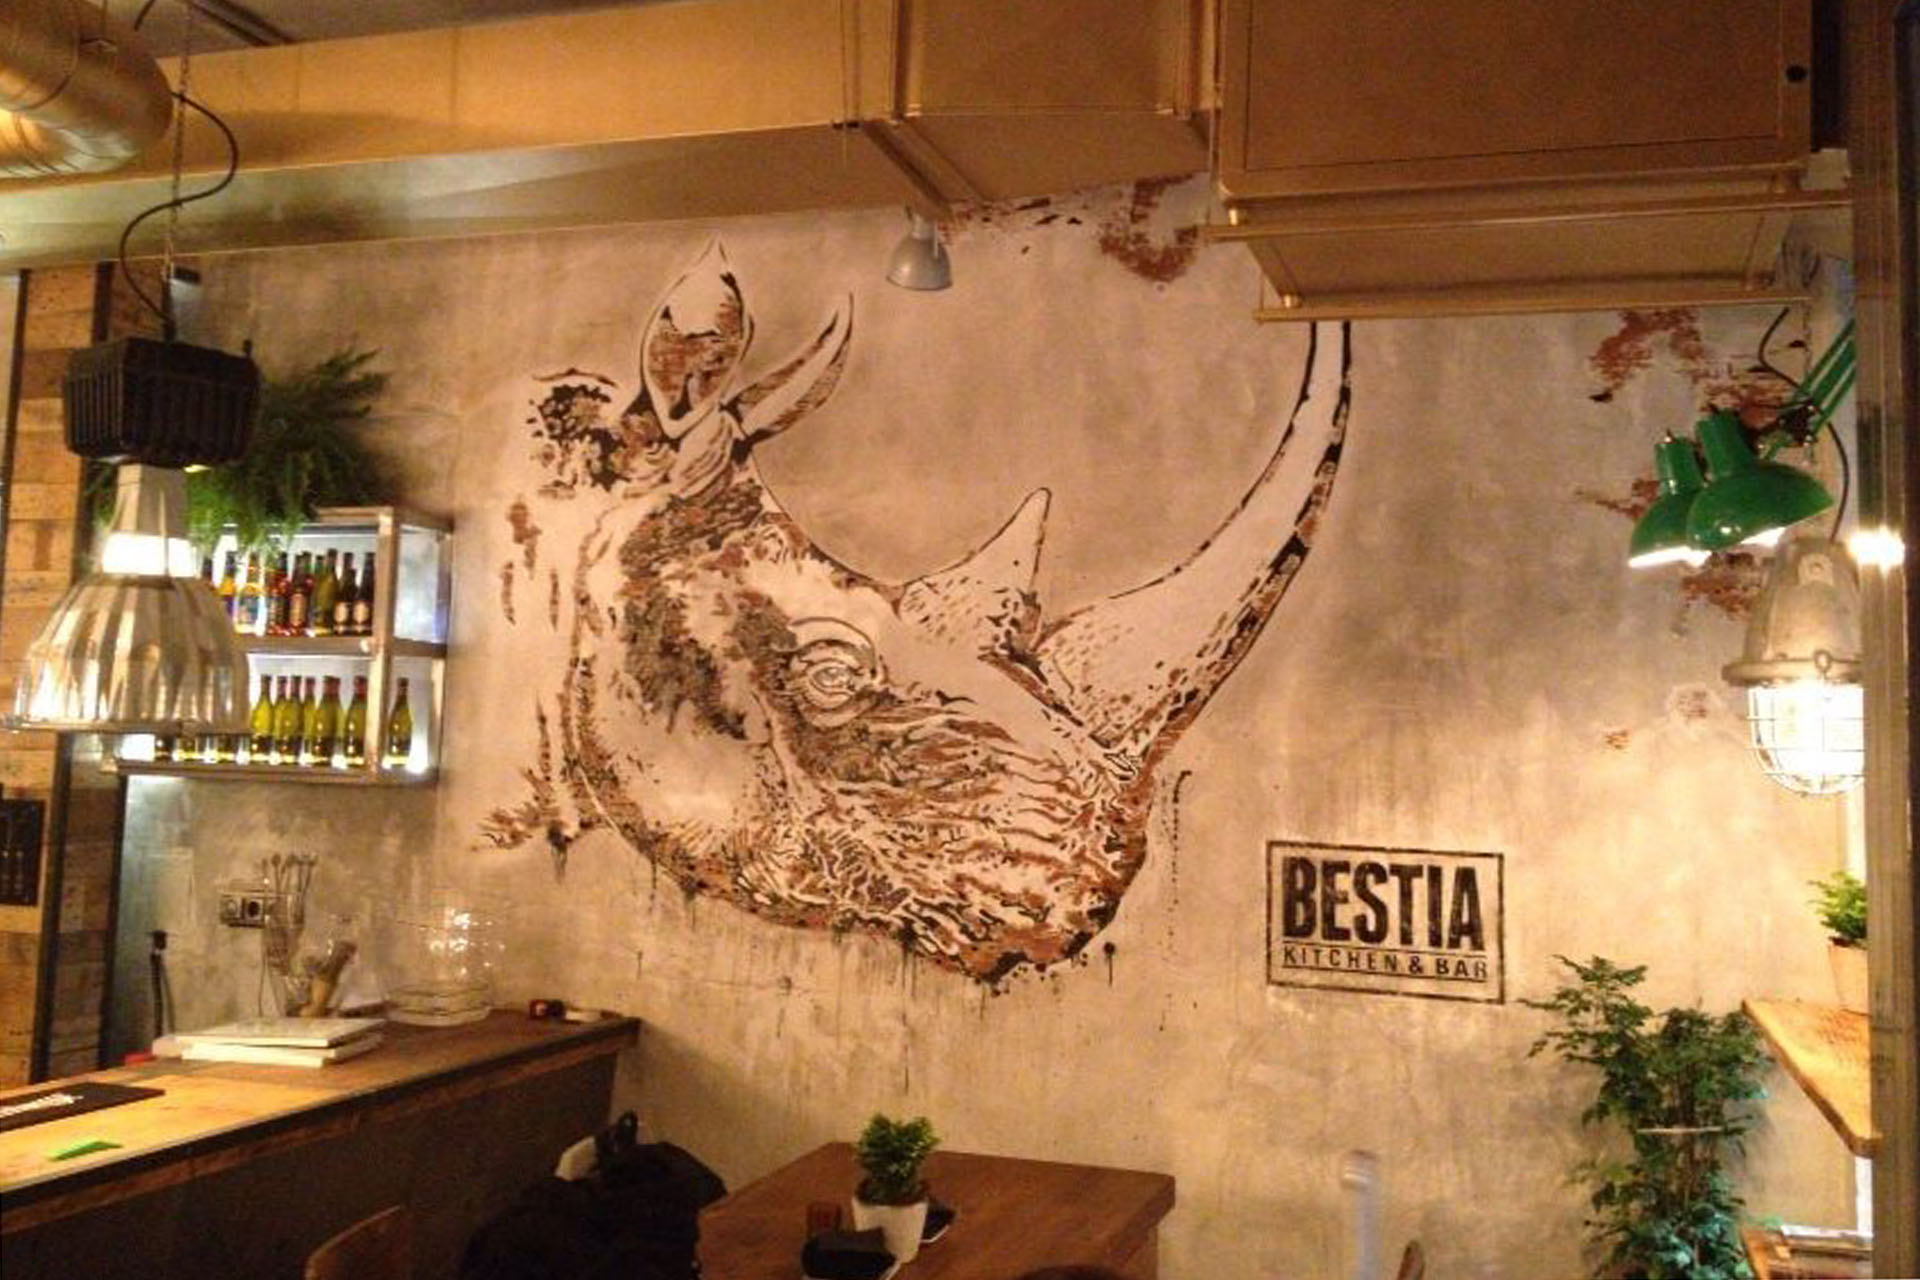 Bestia Kitchen Bar